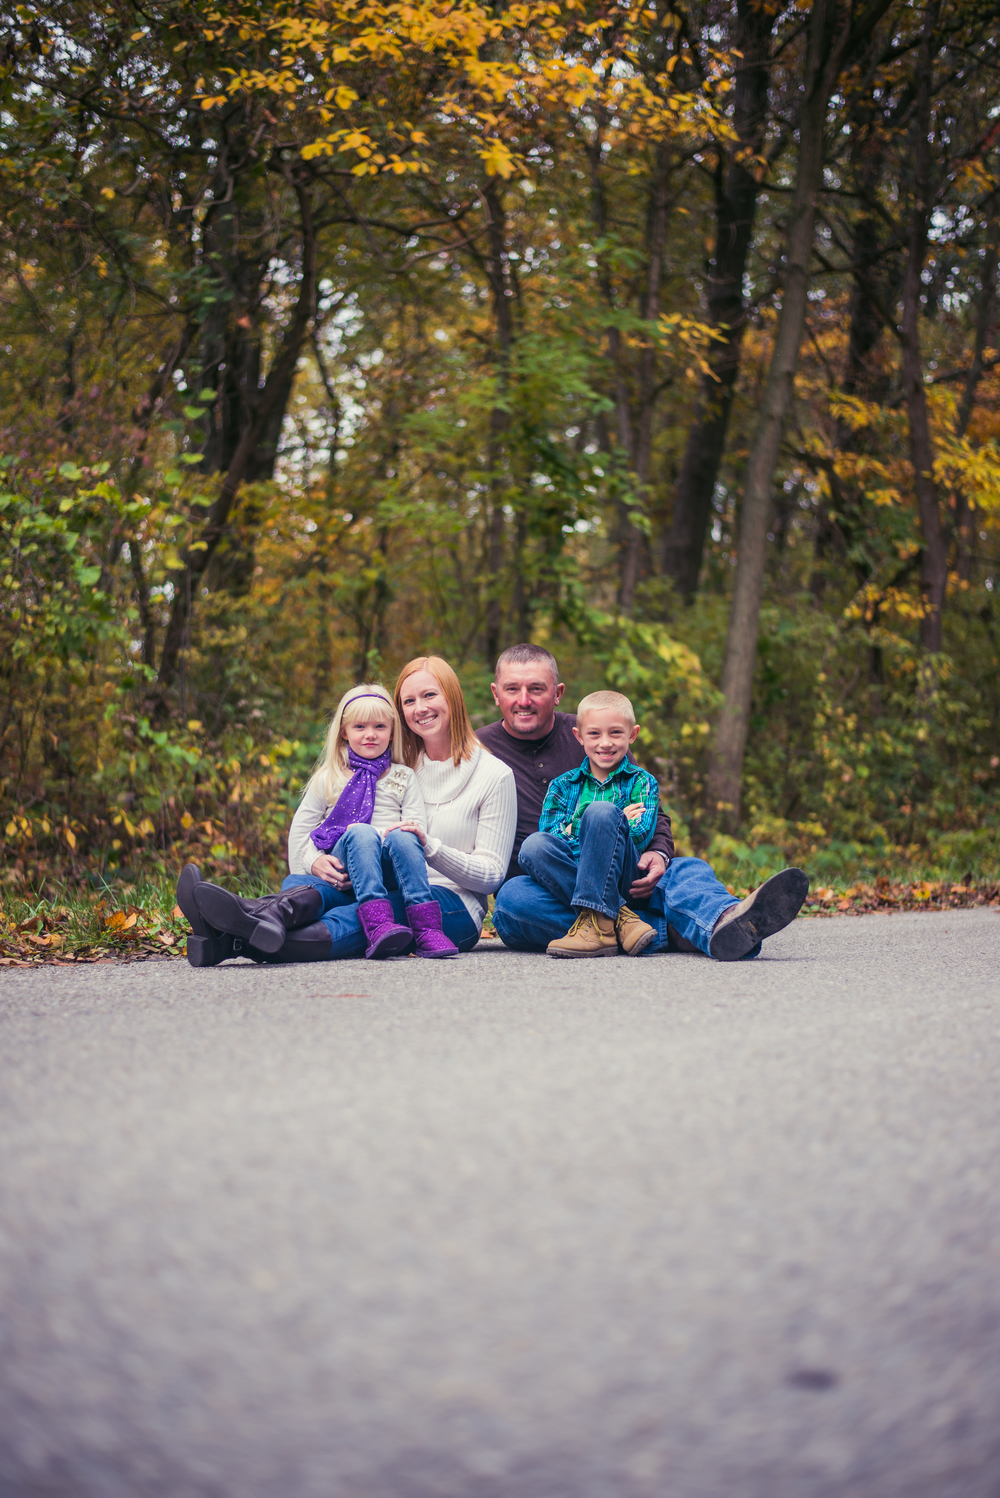 By Kara Photo-By Kara-Kara Evans-Family Photography-Central Illinois Wedding and Portrait Photographer-Watseka Illinois